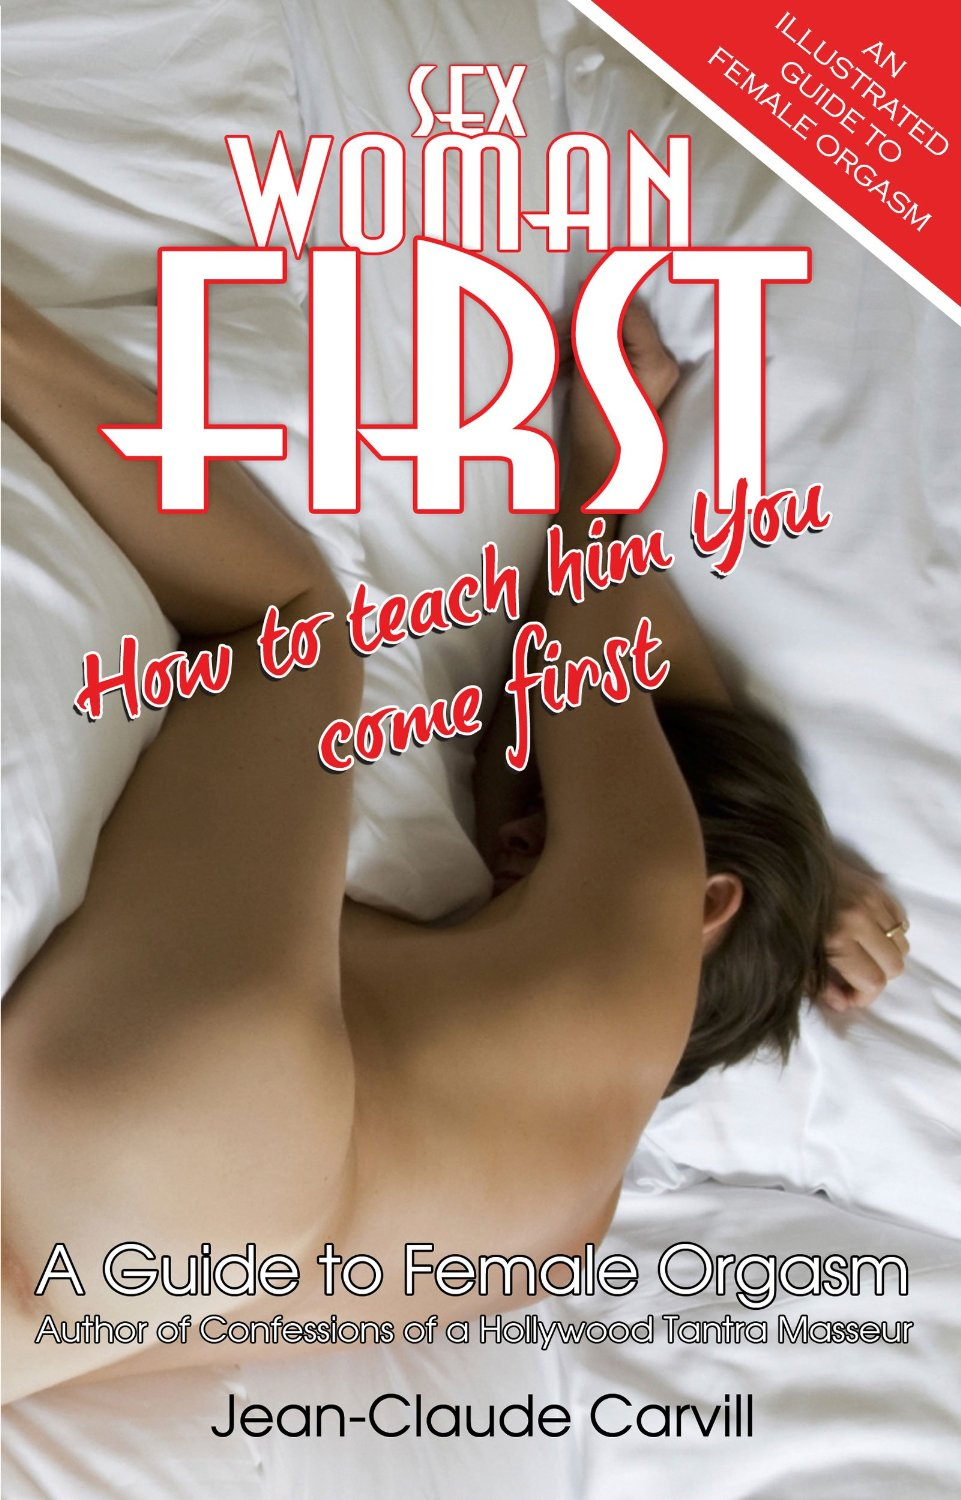 Sex: Woman First - How to teach him You come First - Guide to Female Orgasm free download